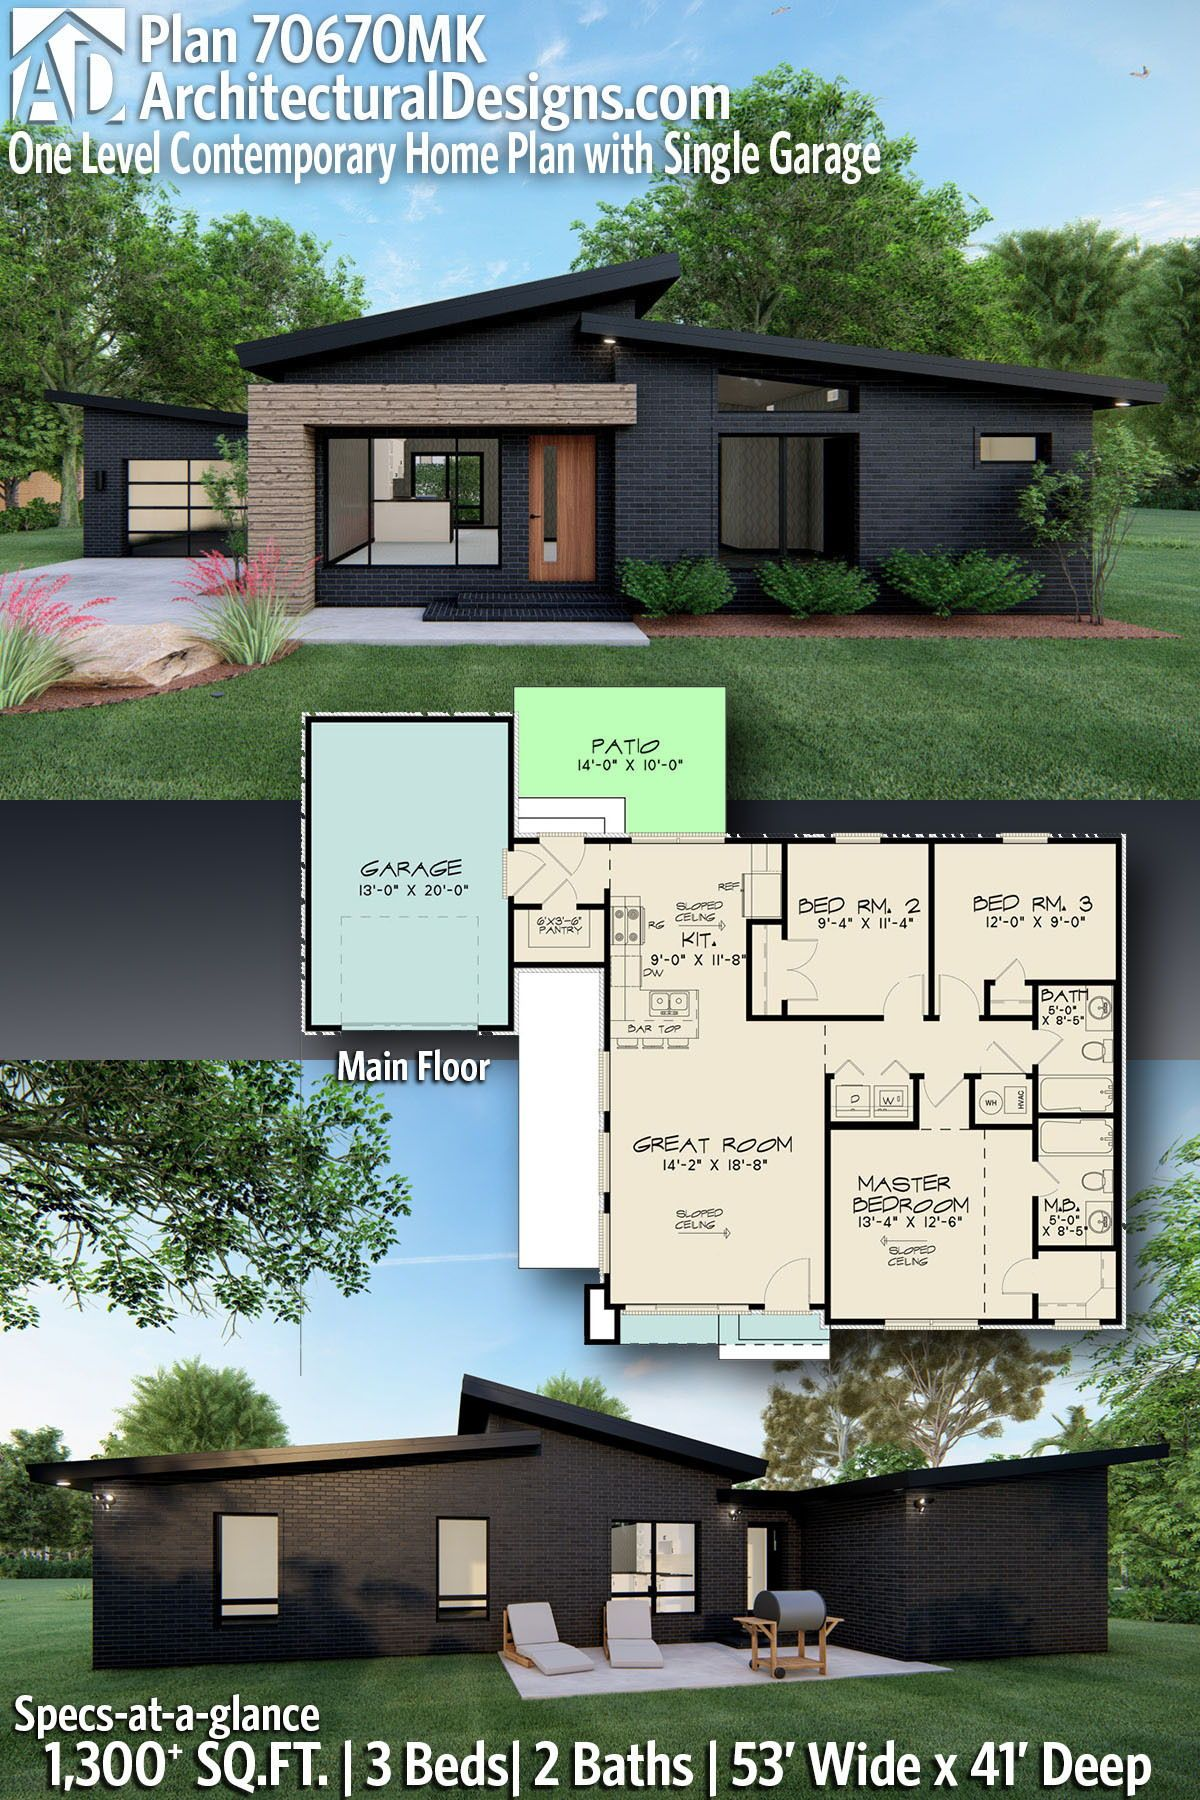 Plan 70670mk One Level Contemporary Home Plan With Single Garage Modern Style House Plans Contemporary House Plans Small Modern House Plans